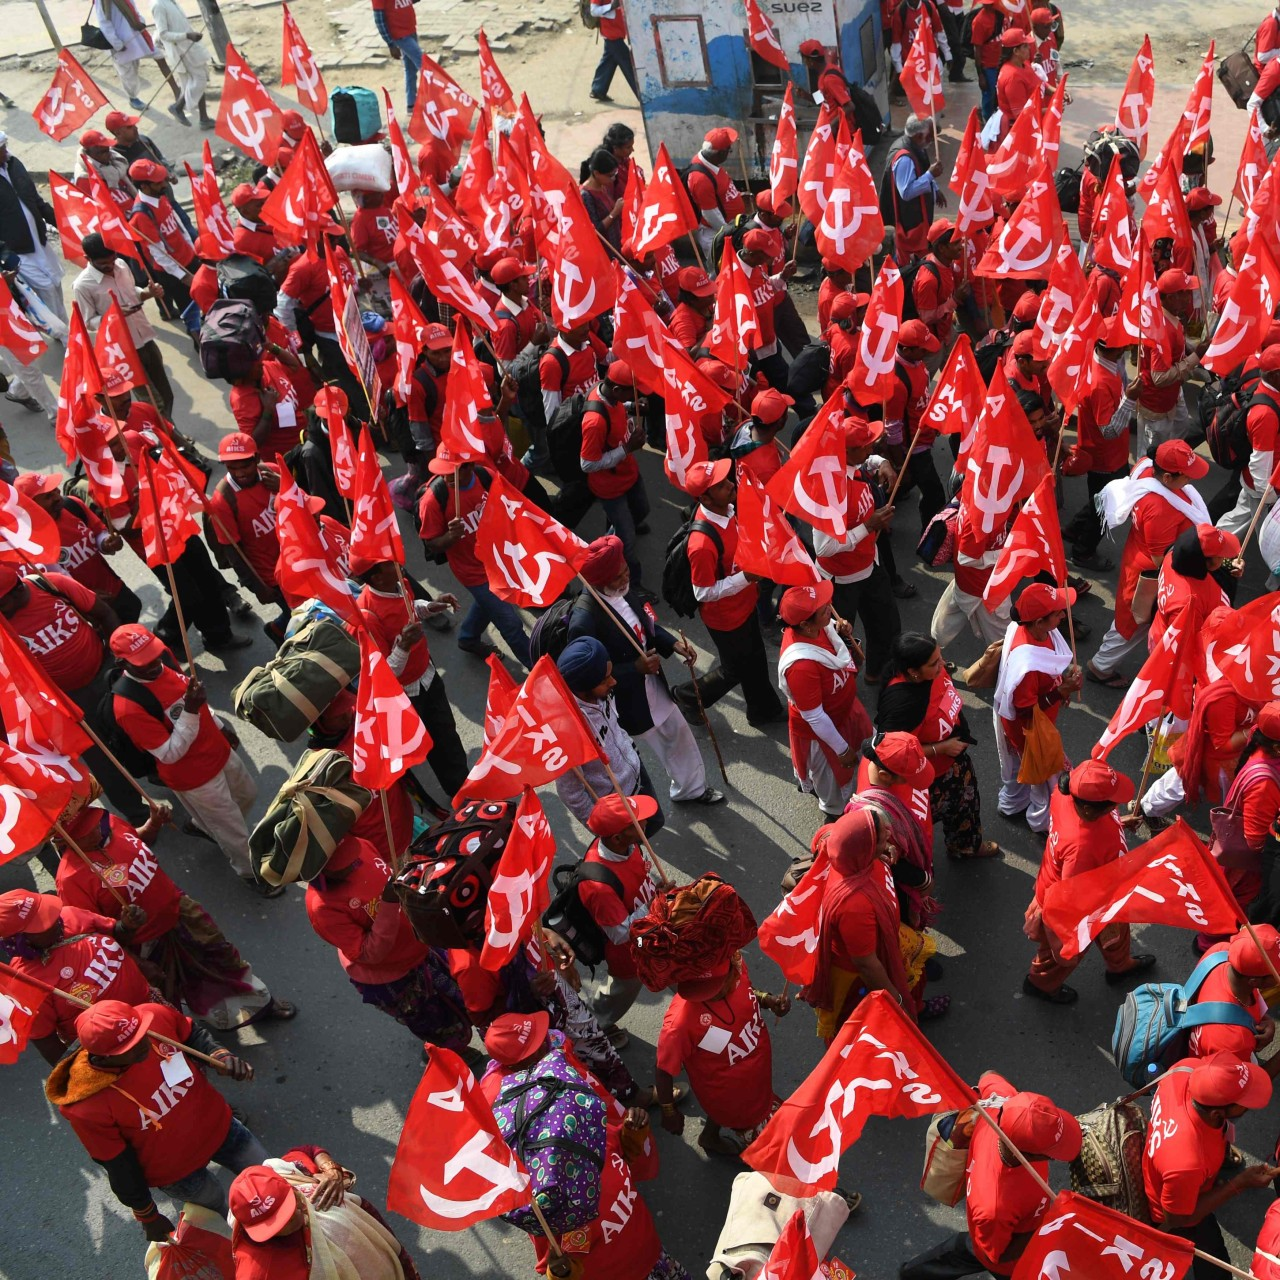 Communism in India: dead or just waiting for young saviours